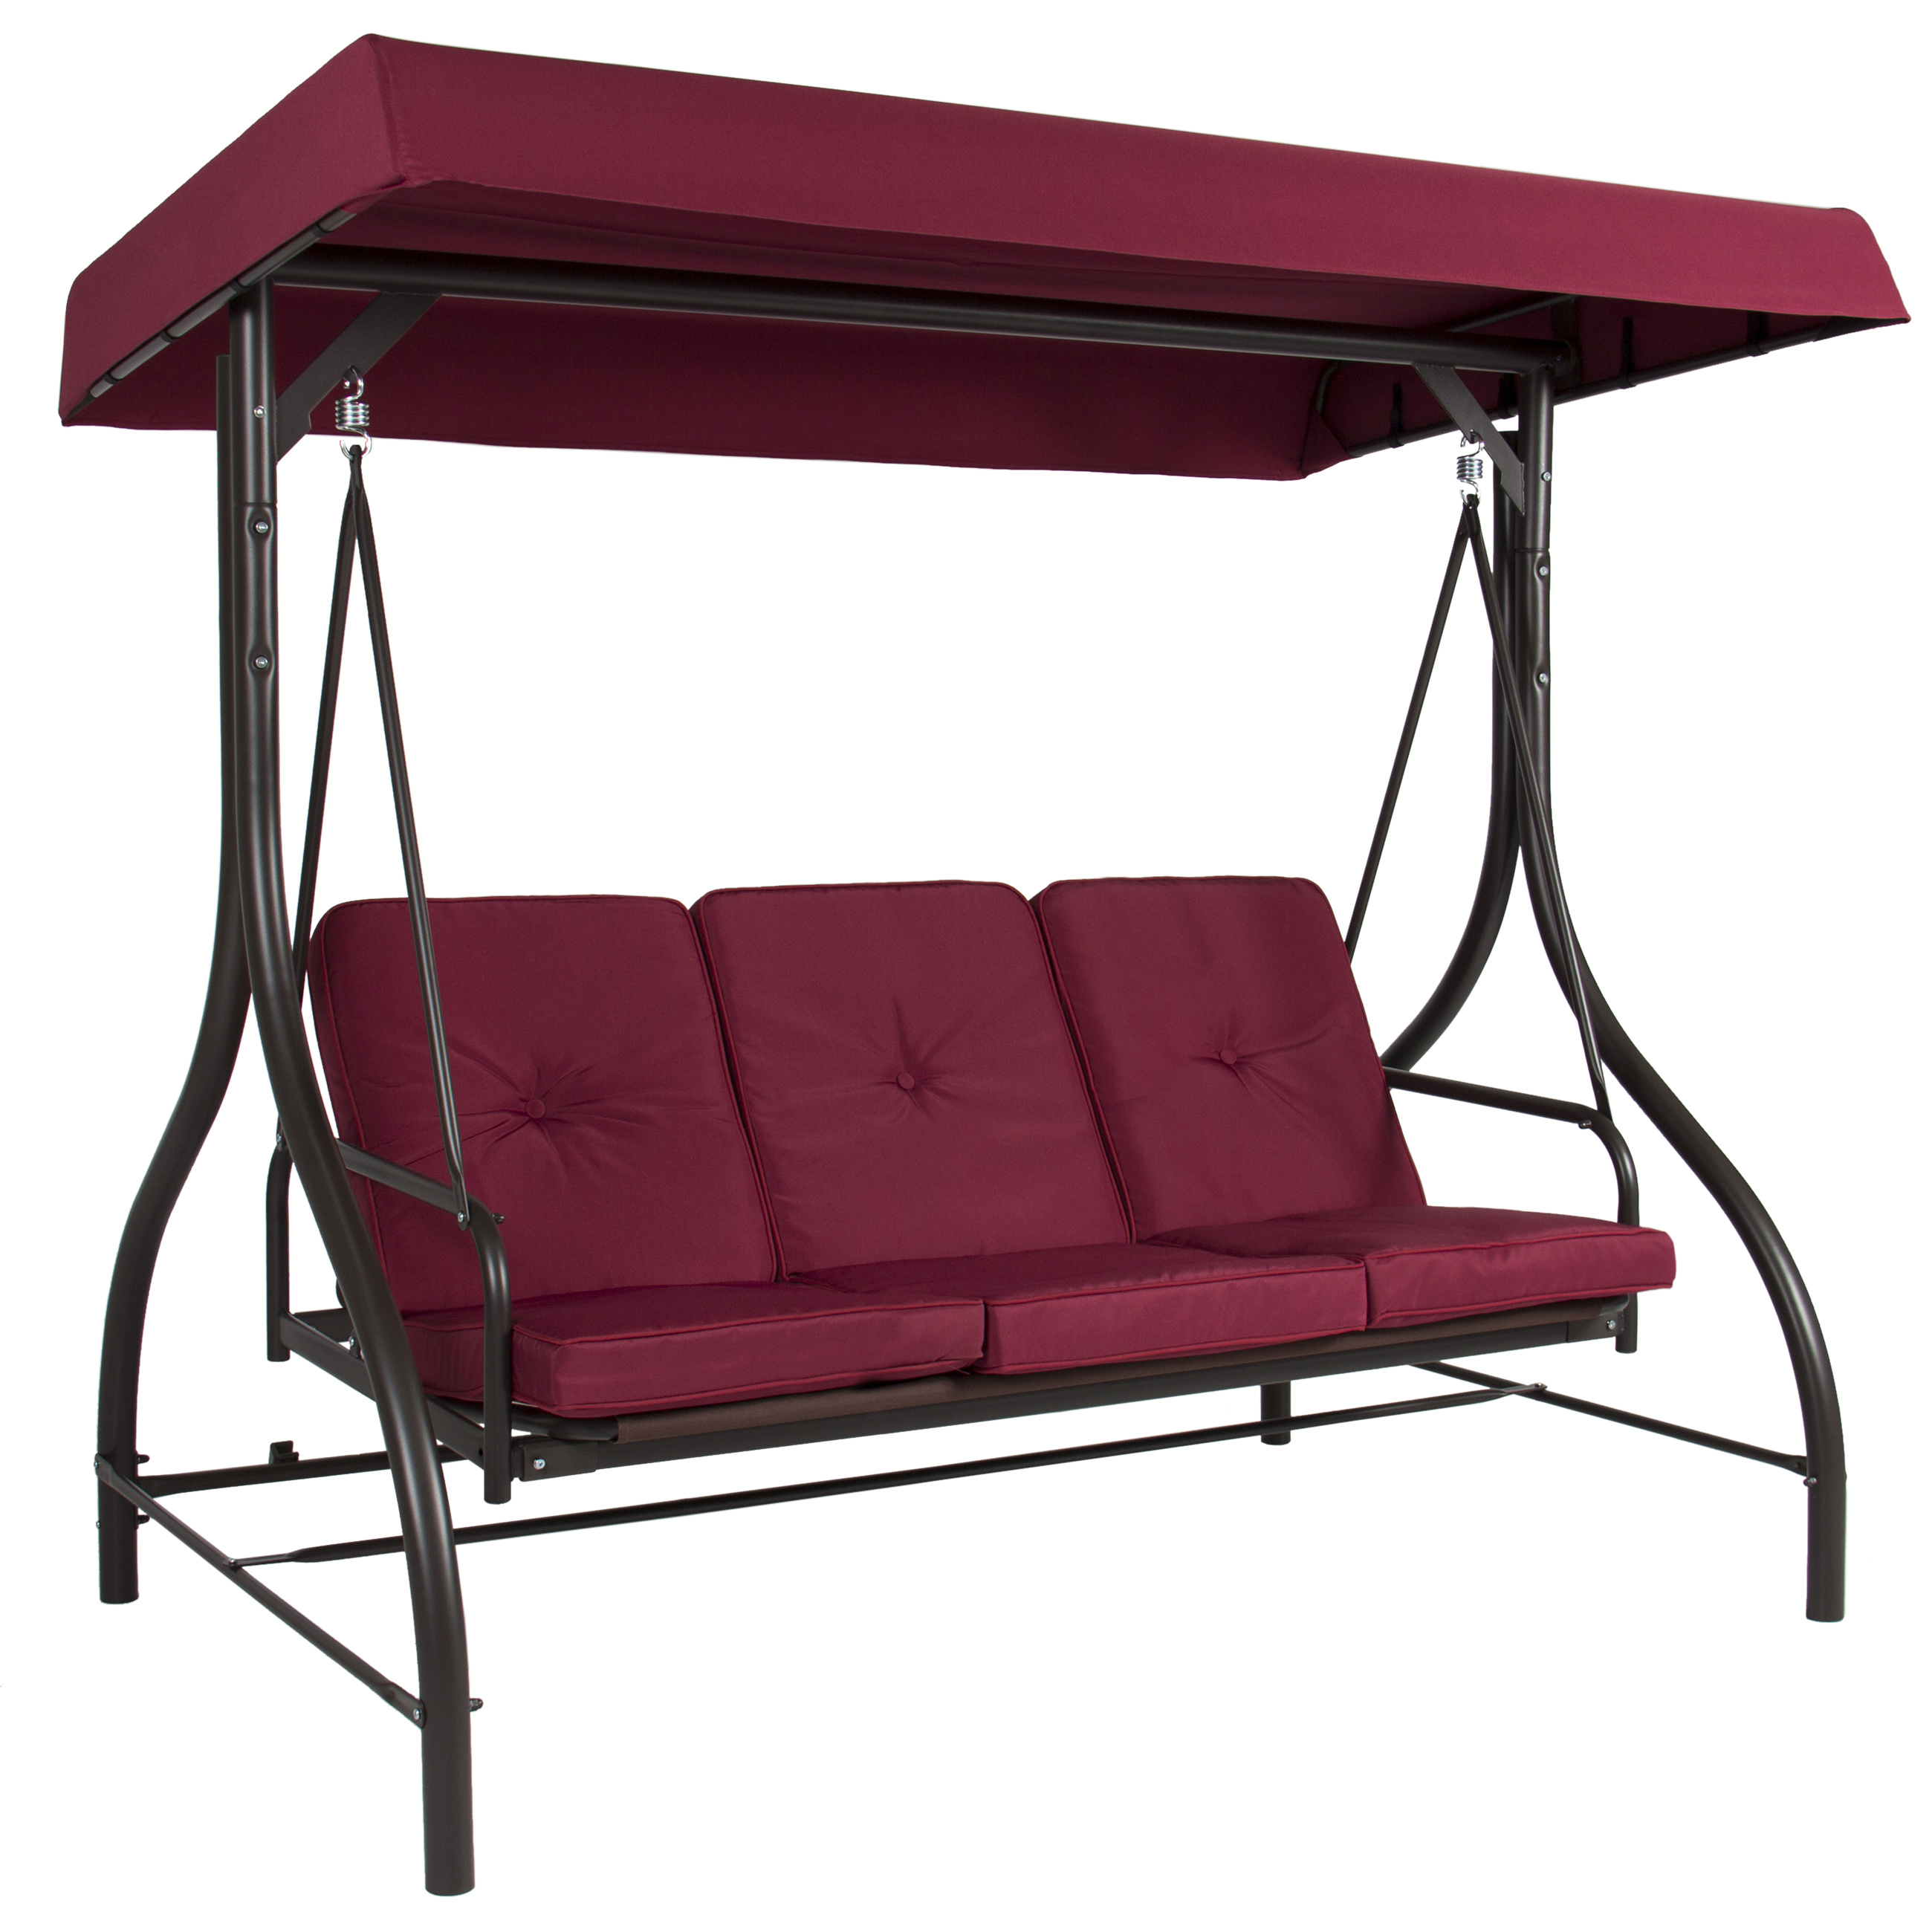 Converting Outdoor Swing Canopy Hammock Seats 3 Patio Deck Furniture  Burgundy   Walmart.com